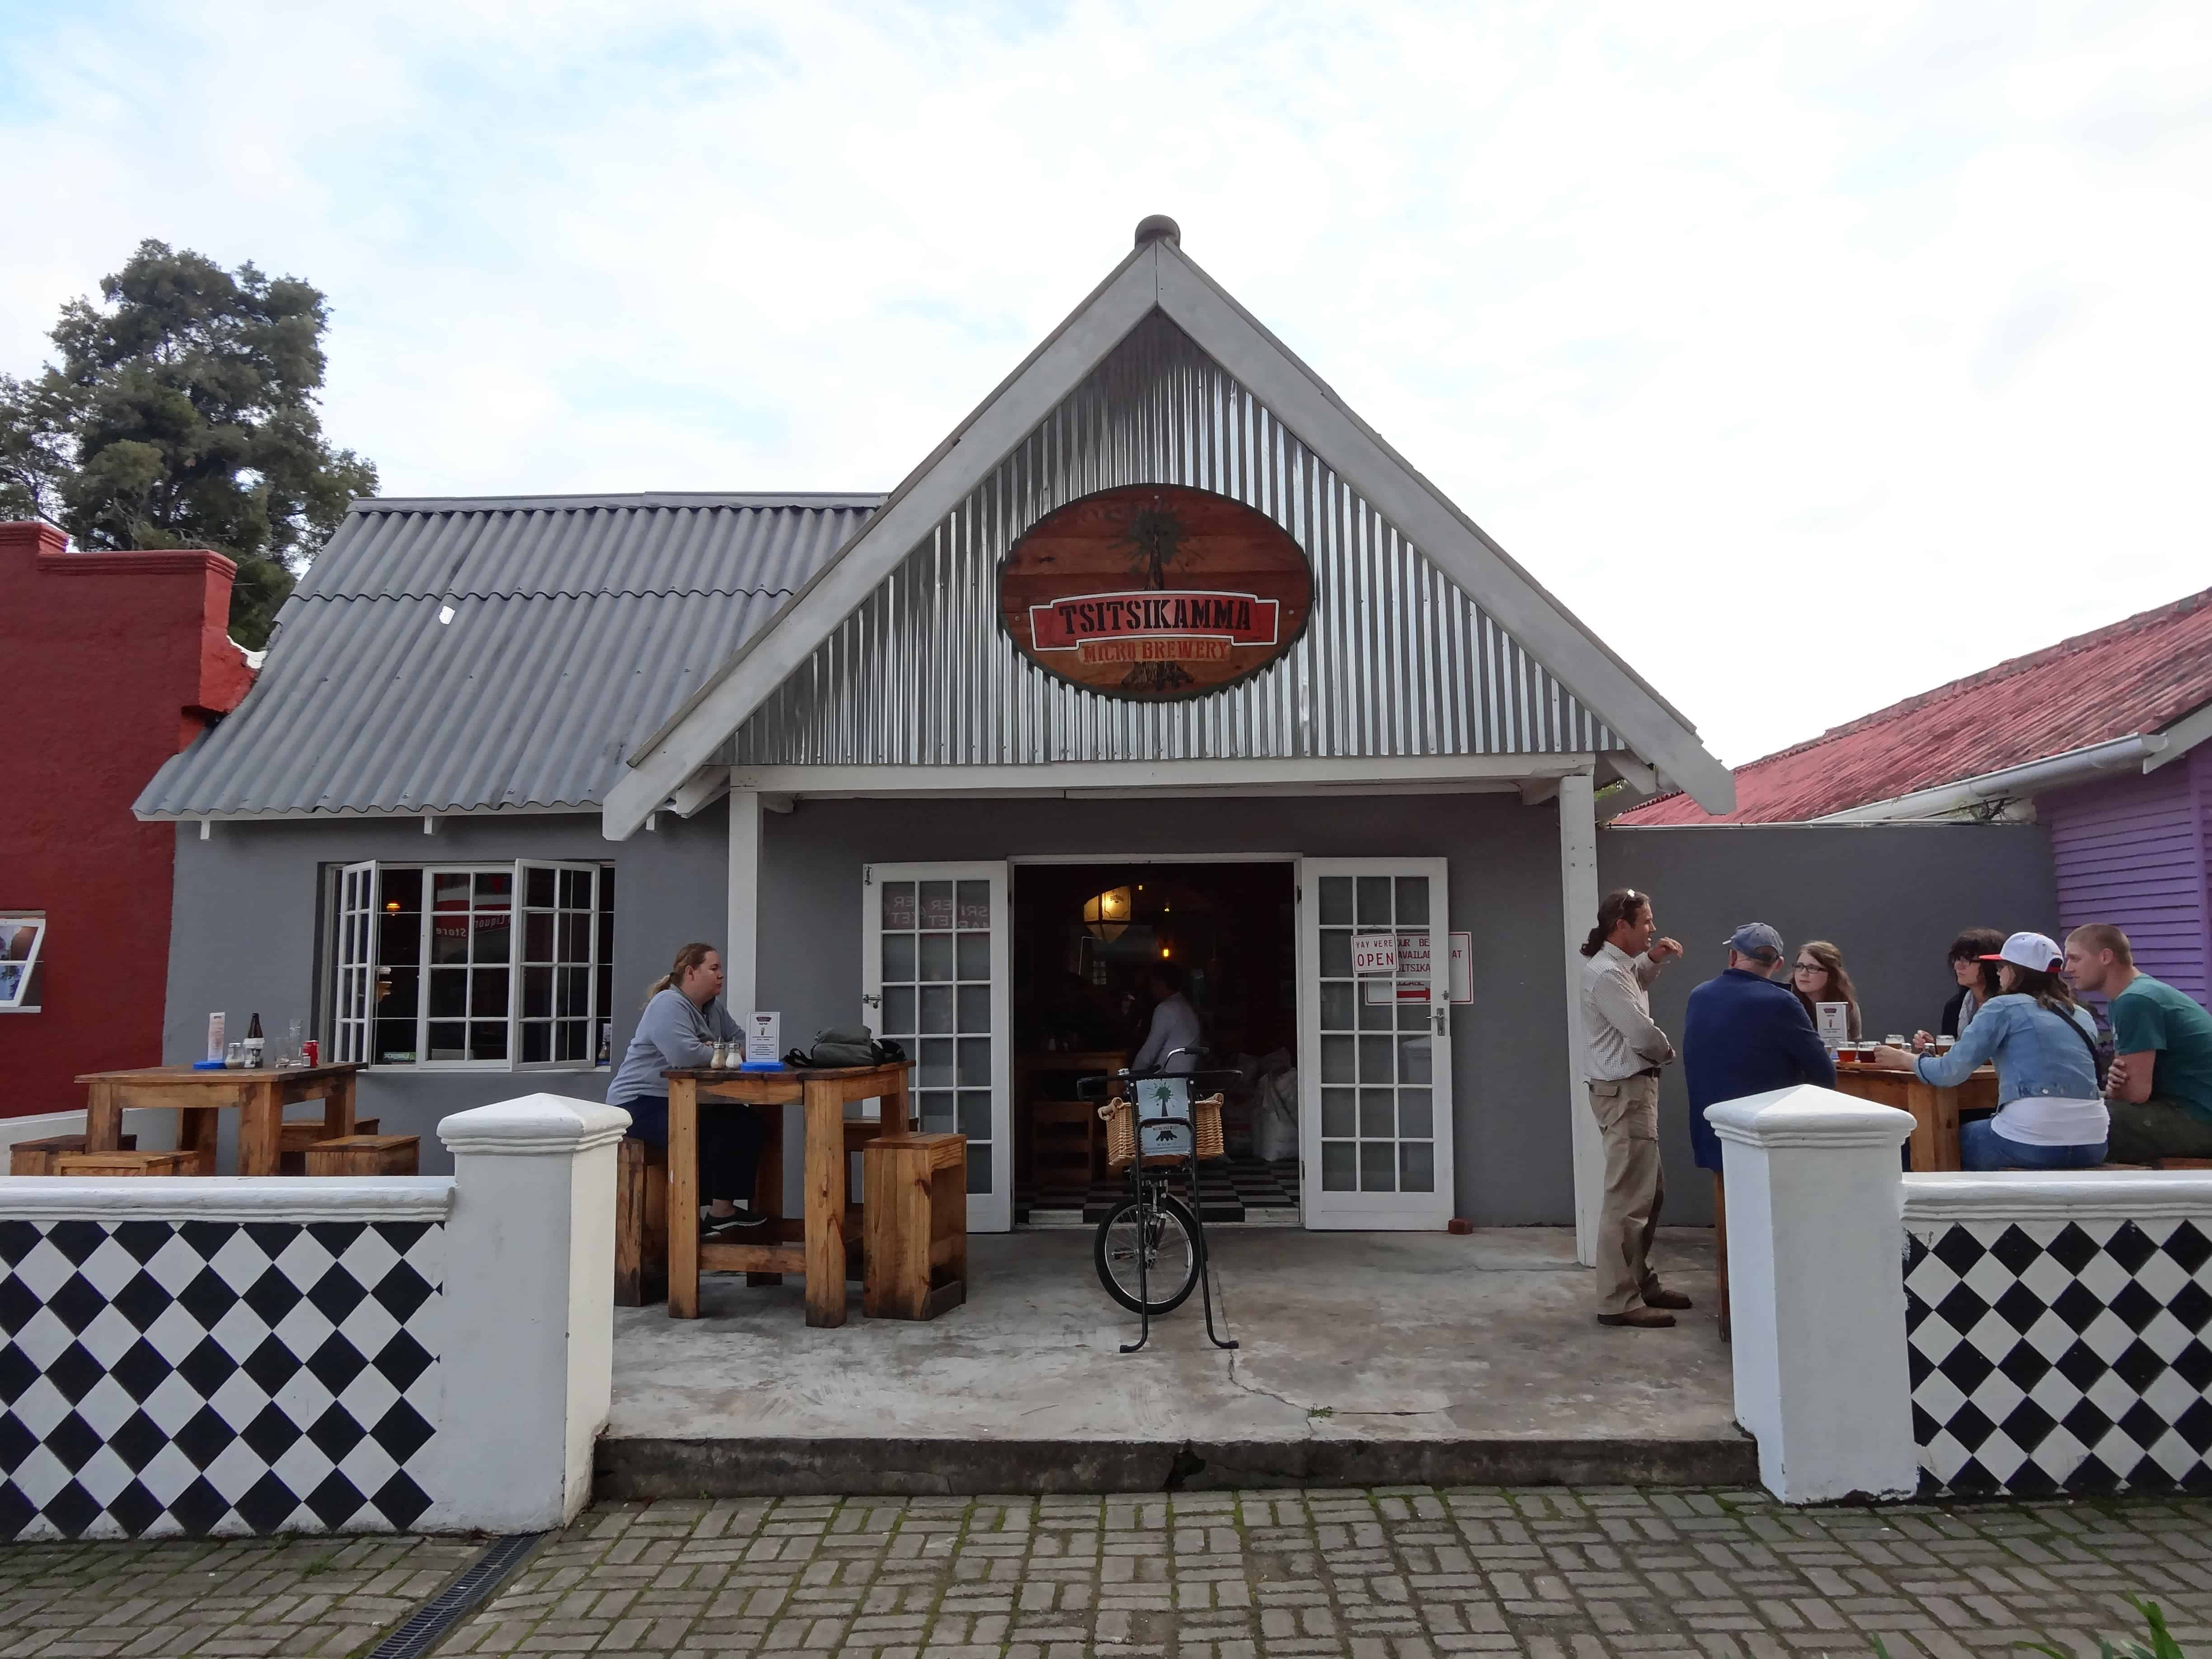 Stormsriver Village's microbrewery